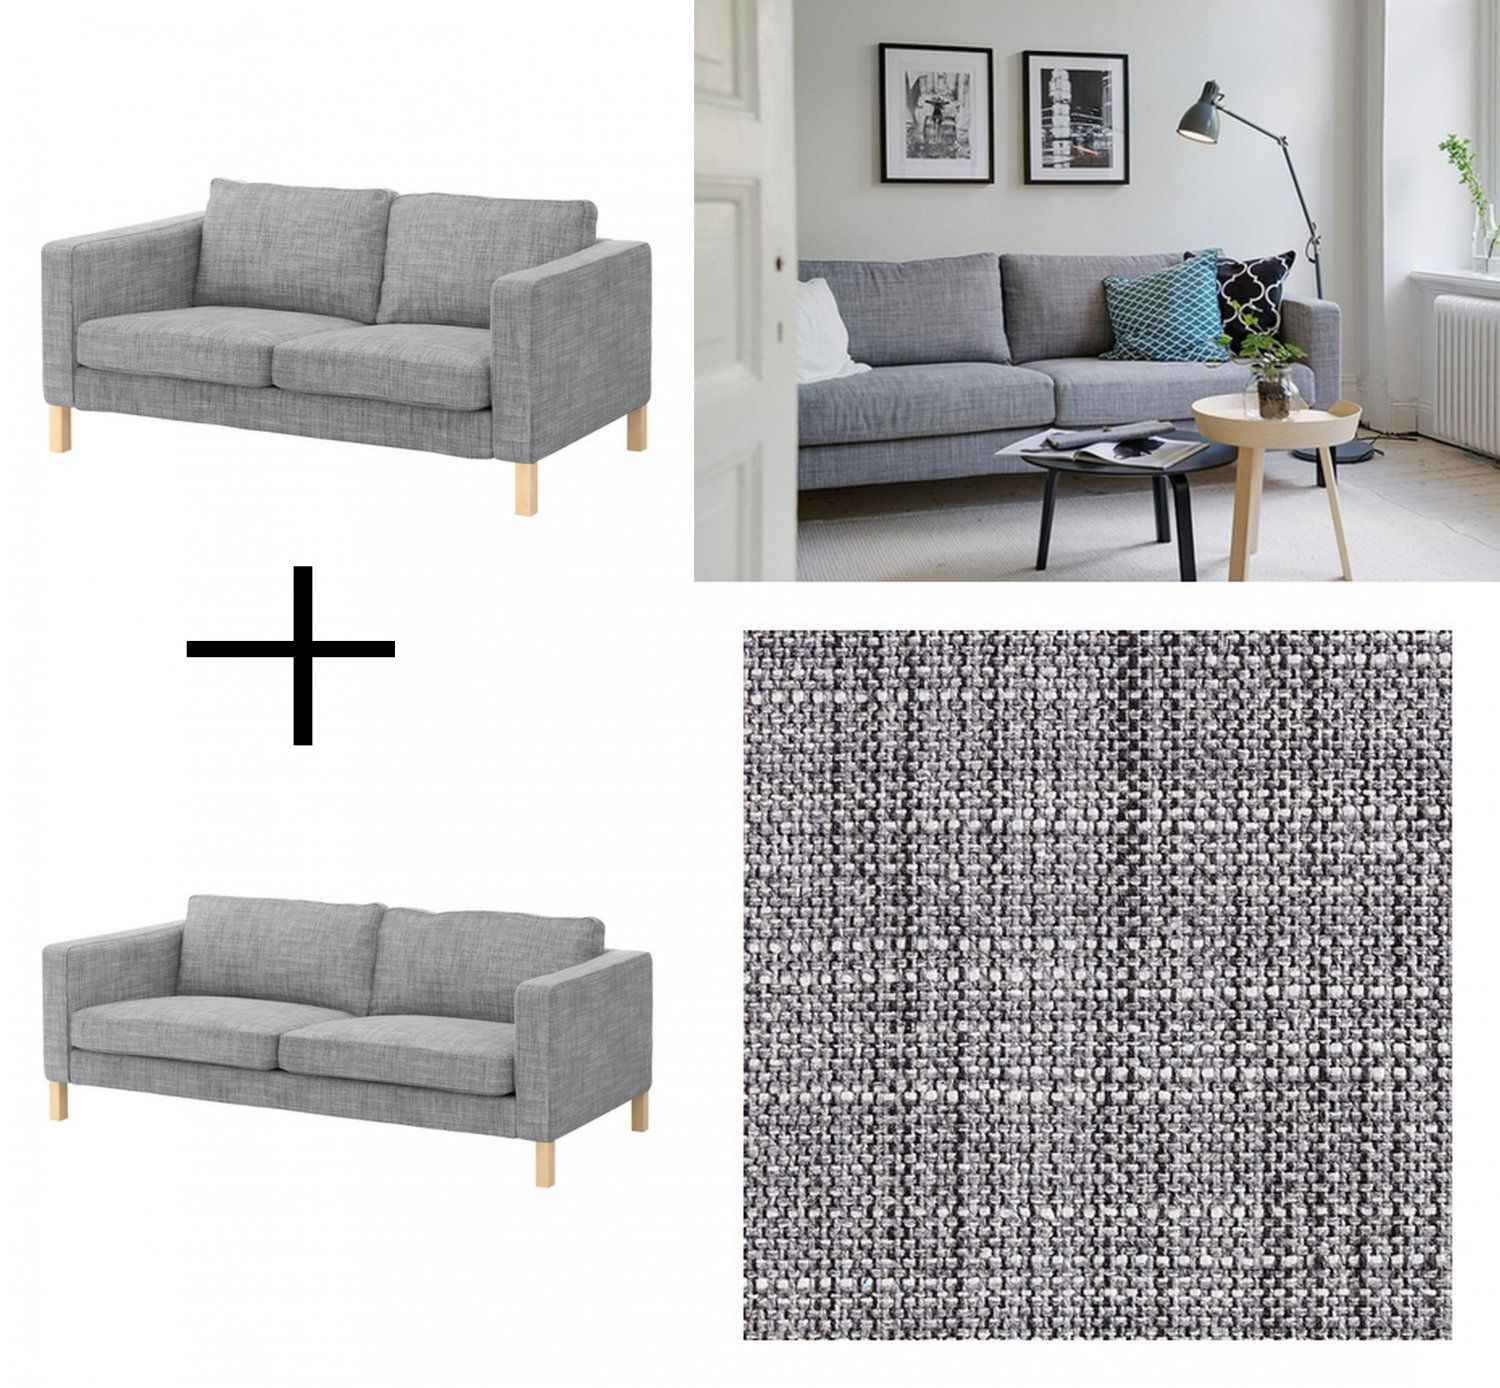 Ikea Karlstad Sofa And Loveseat Slipcover Cover Isunda Gray Grey Linen Blend 2 And 3 Seat Sofa Design Ikea Klippan Sofa Wohnzimmer Sofa